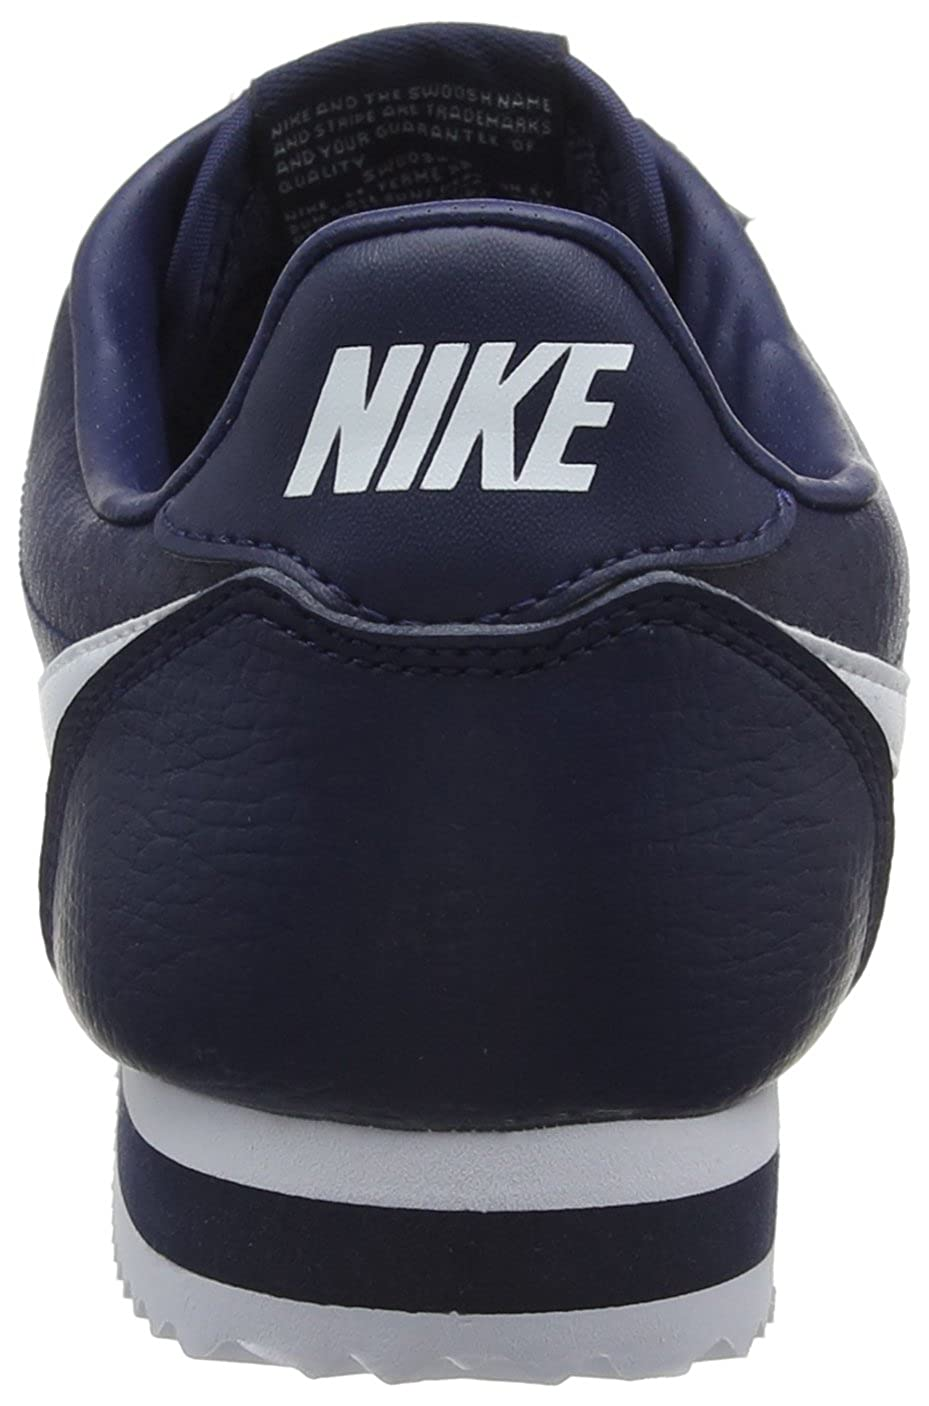 get new new authentic reasonably priced Buy Nike Classic Cortez Leather Fashion Sneaker - 11.5M - Midnight ...